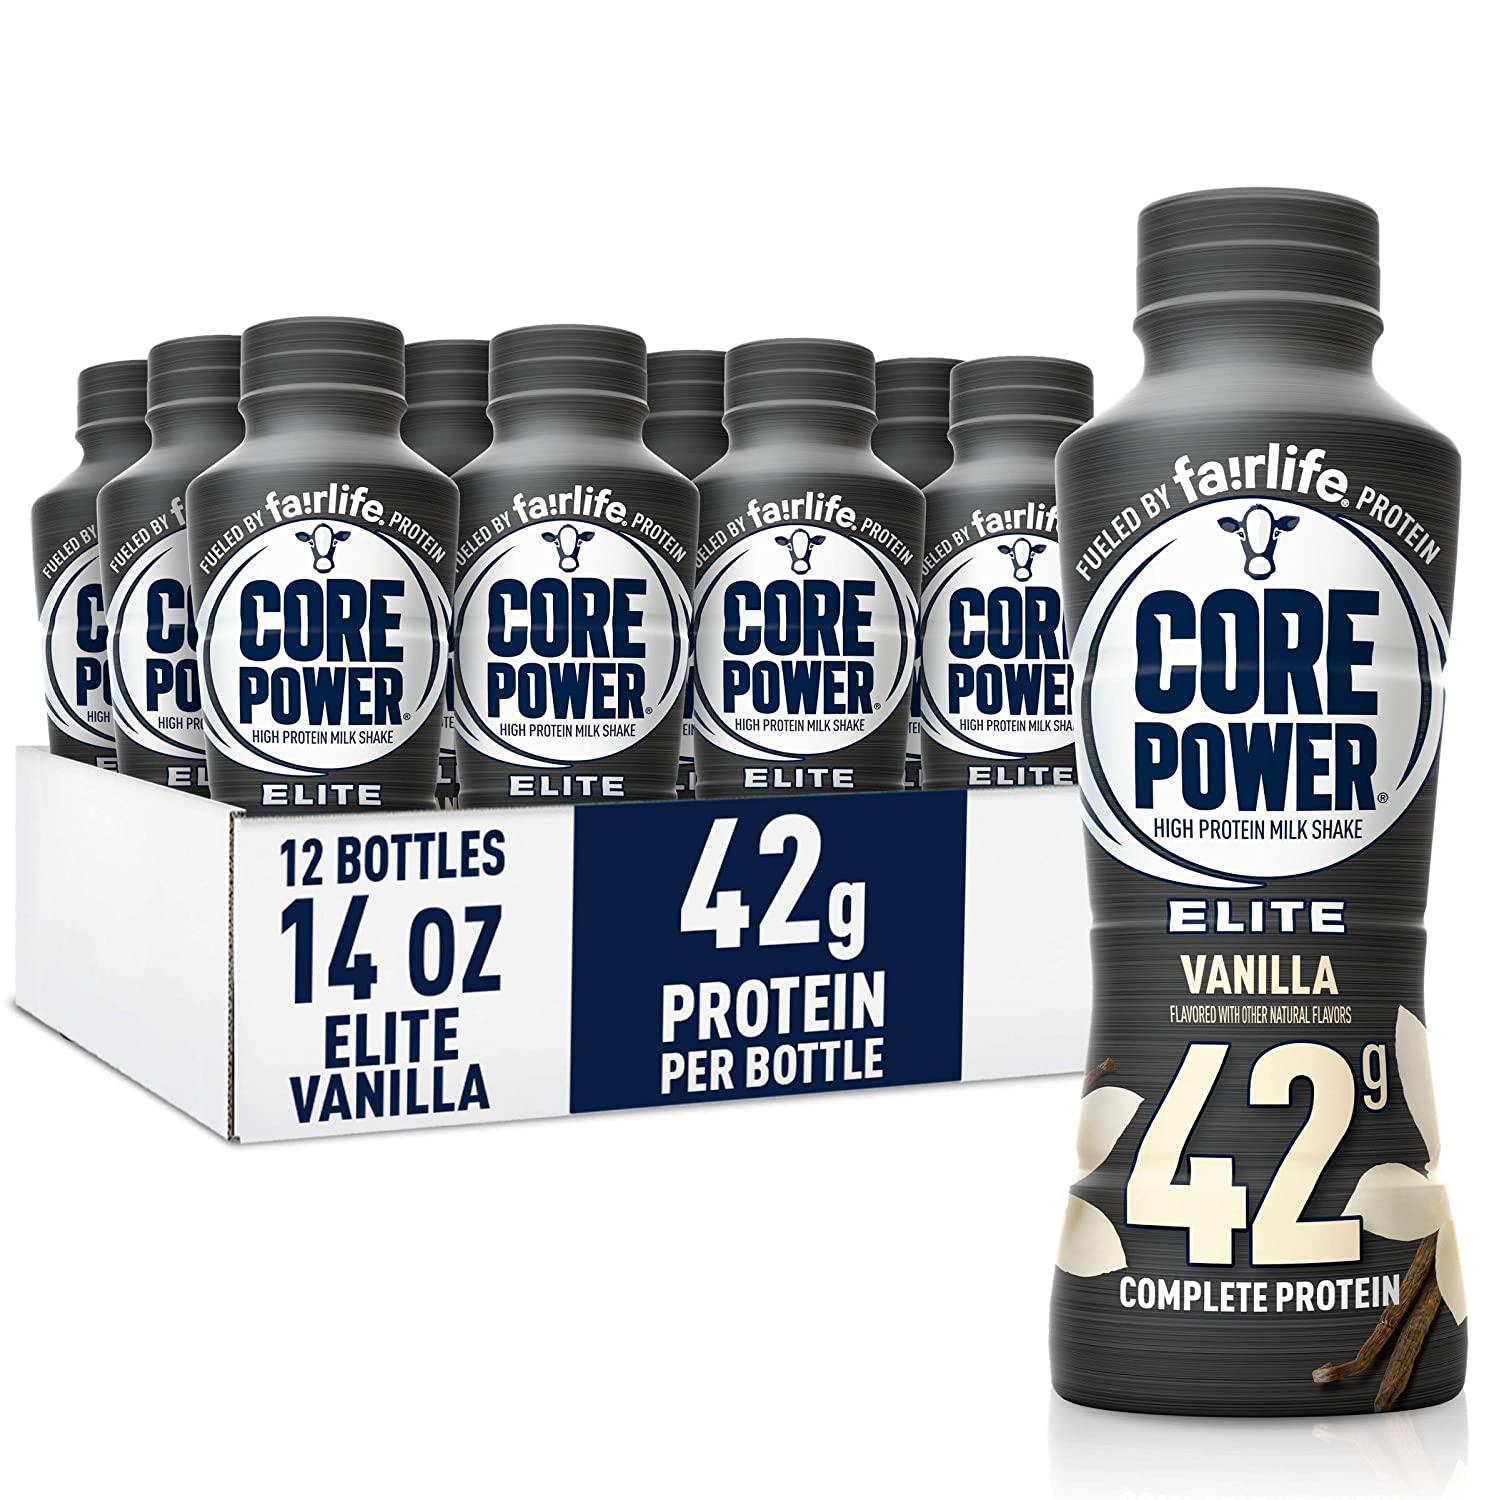 Fairlife Core Power Elite Fees free High Rea Protein Clearance SALE! Limited time! 42g Shake Vanilla